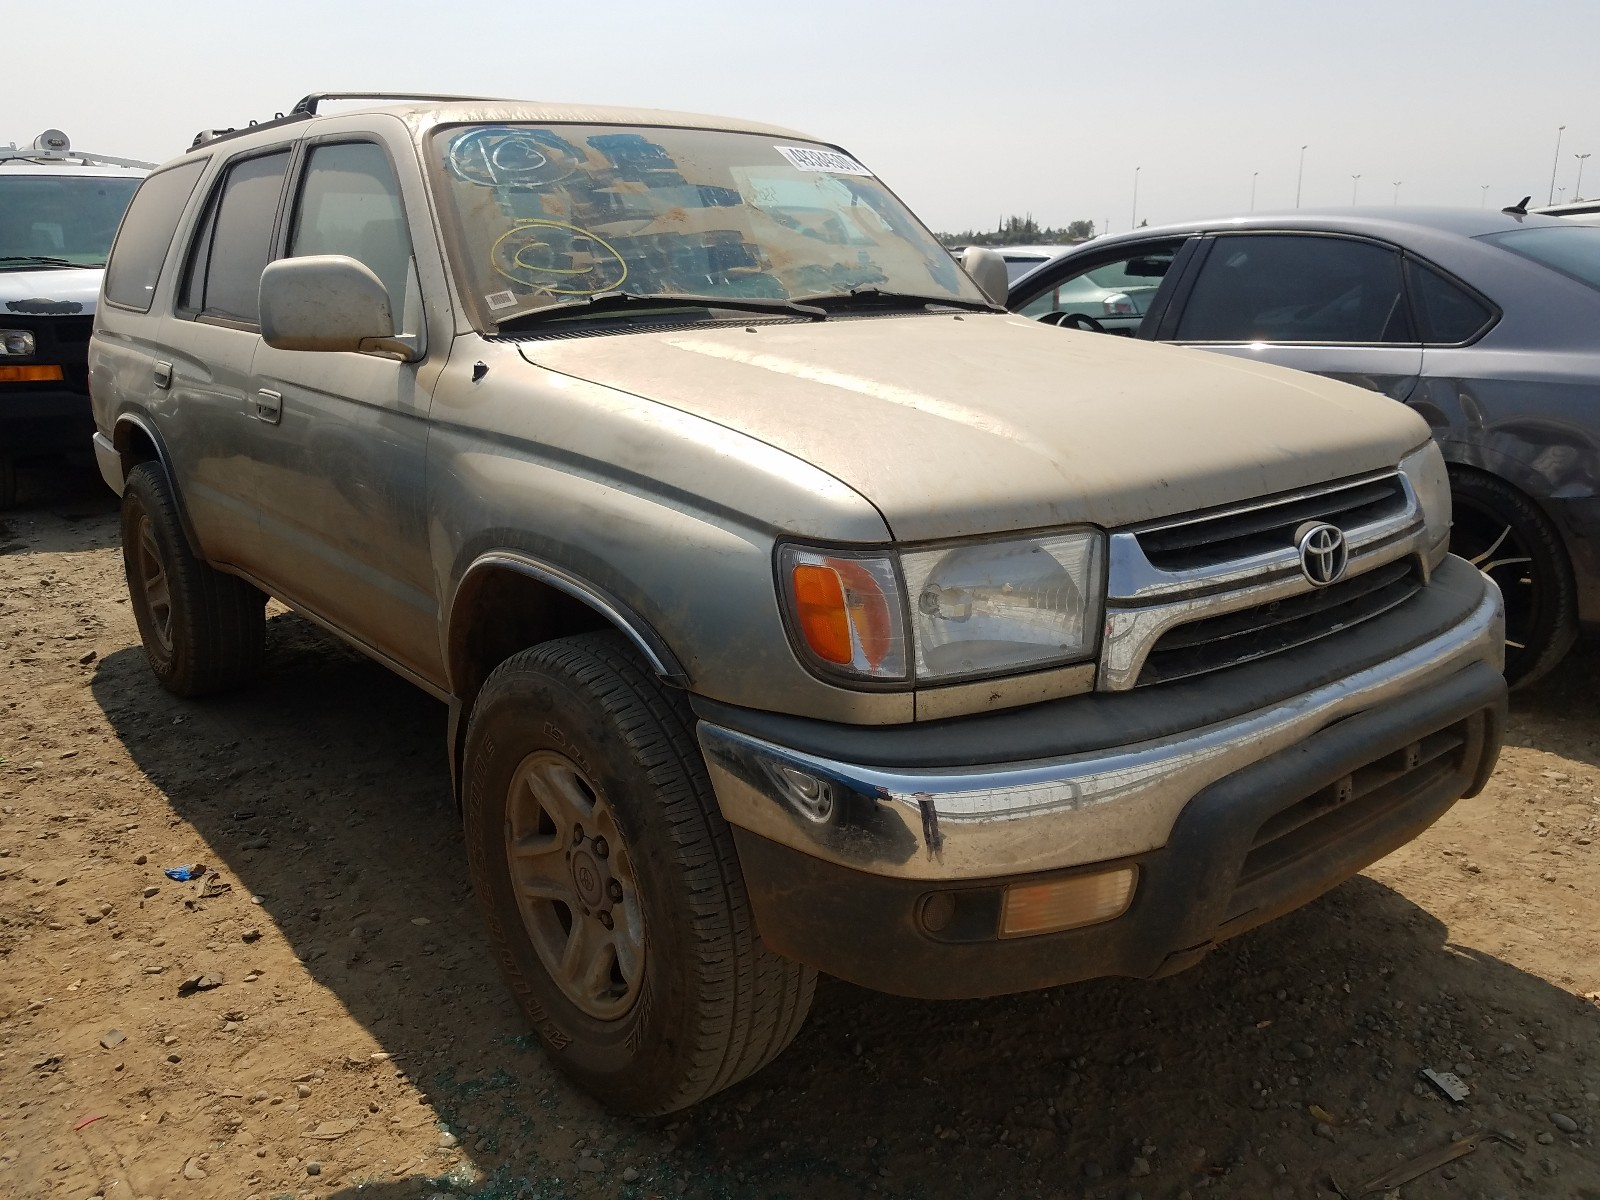 2001 Toyota 4runner Sr For Sale At Copart Sacramento Ca Lot 49384500 Salvagereseller Com